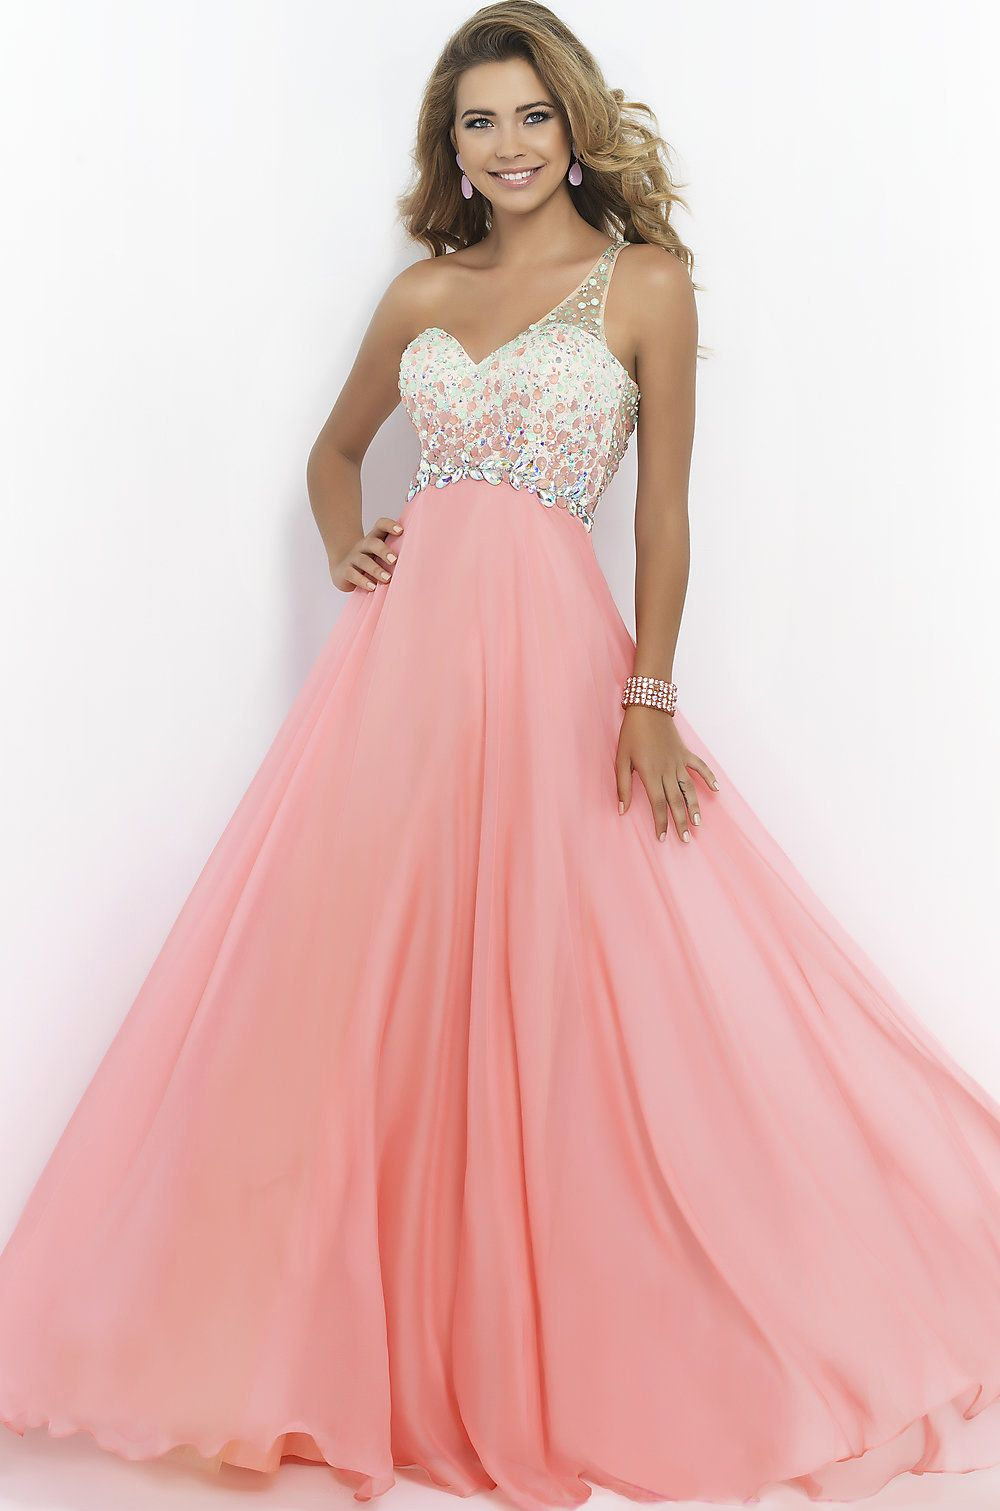 One Shoulder #Prom Dress http://findress.com/goods.php?id=54 ...